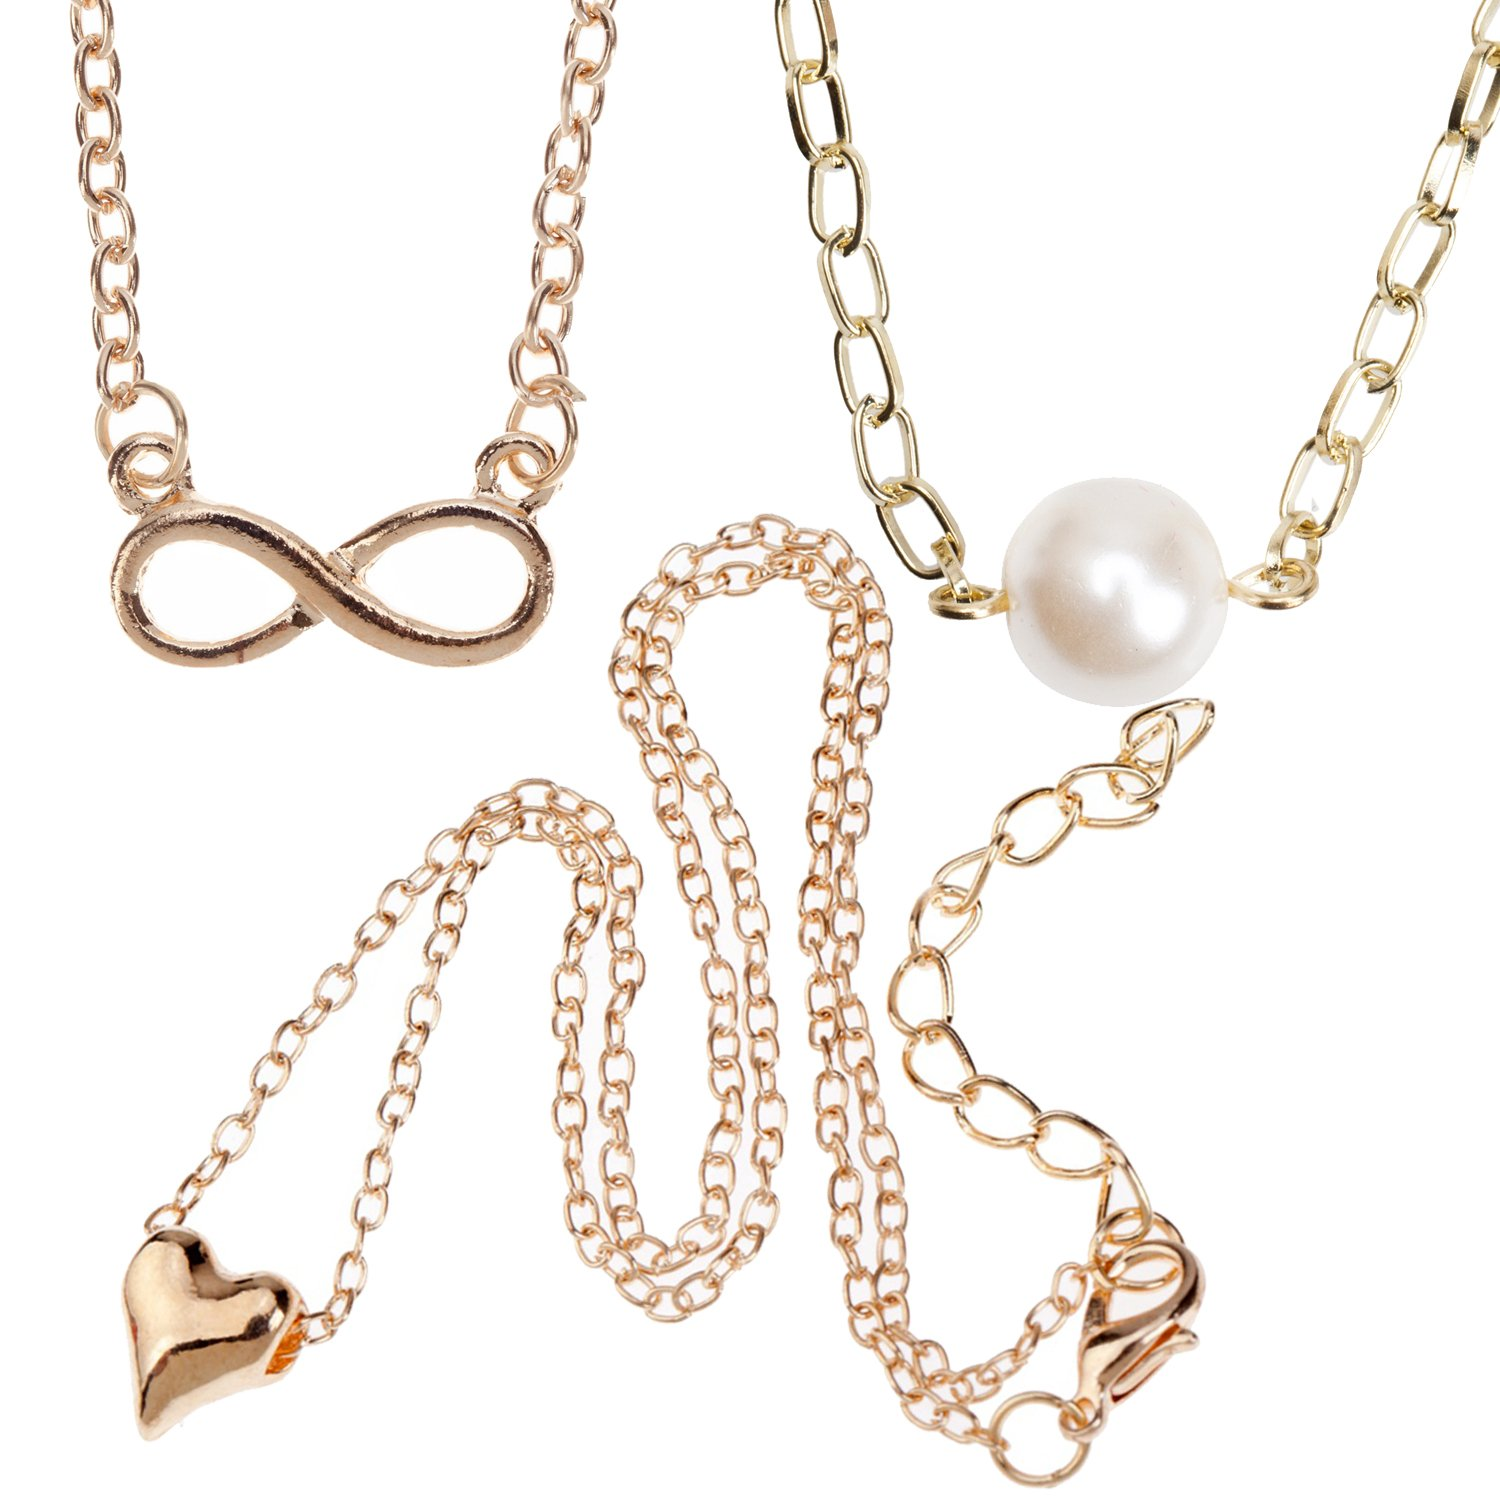 Jewelry Set/Kit/Lot of 3pcs Womens Ladies Girls Golden Fashion Necklaces With Different Pendants On Chains